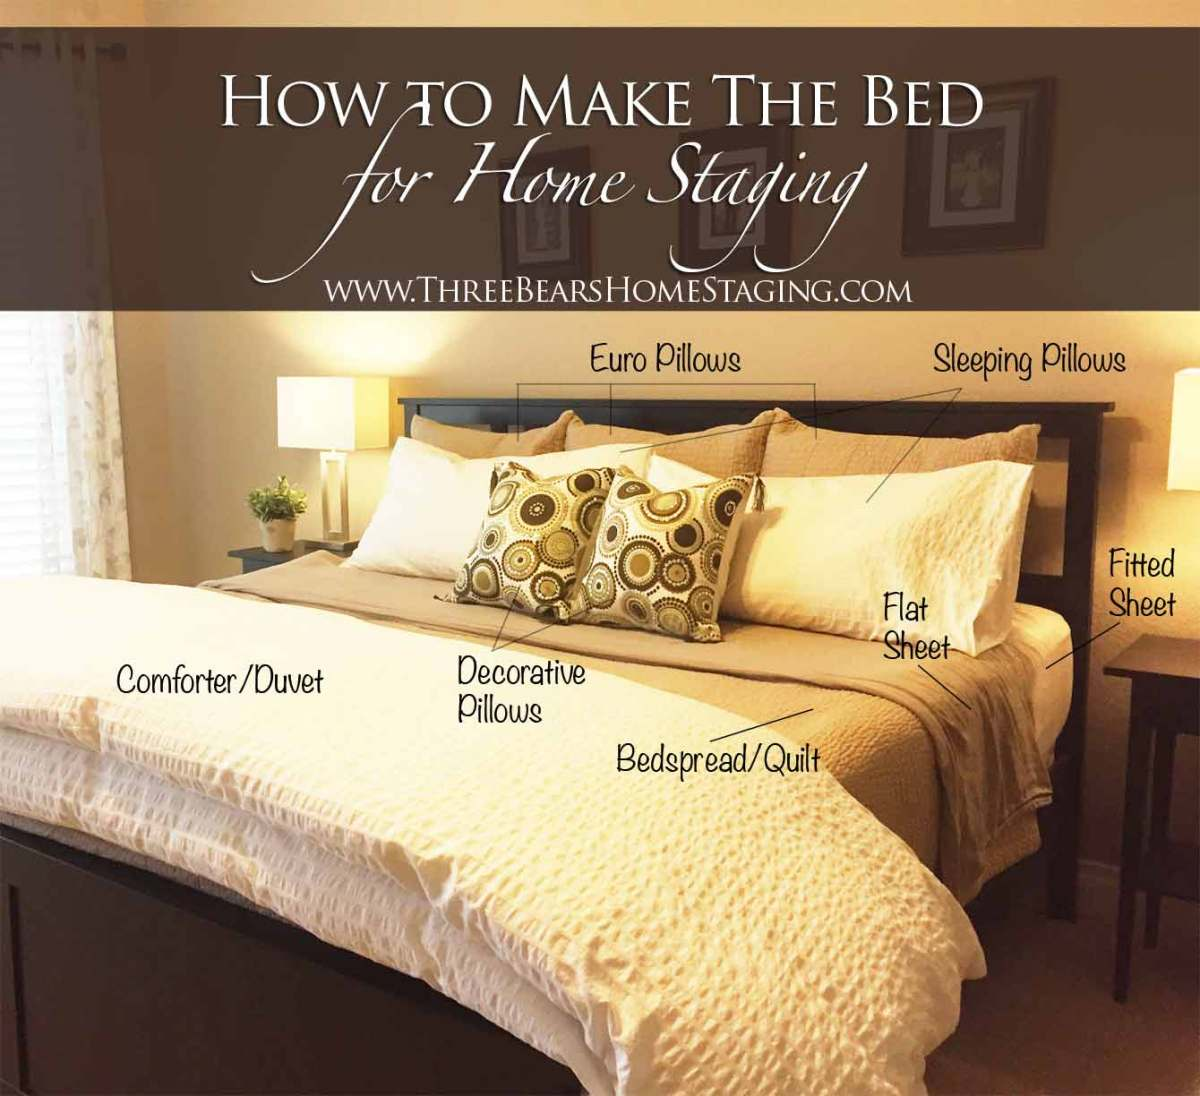 How to Make the Bed for Home Staging